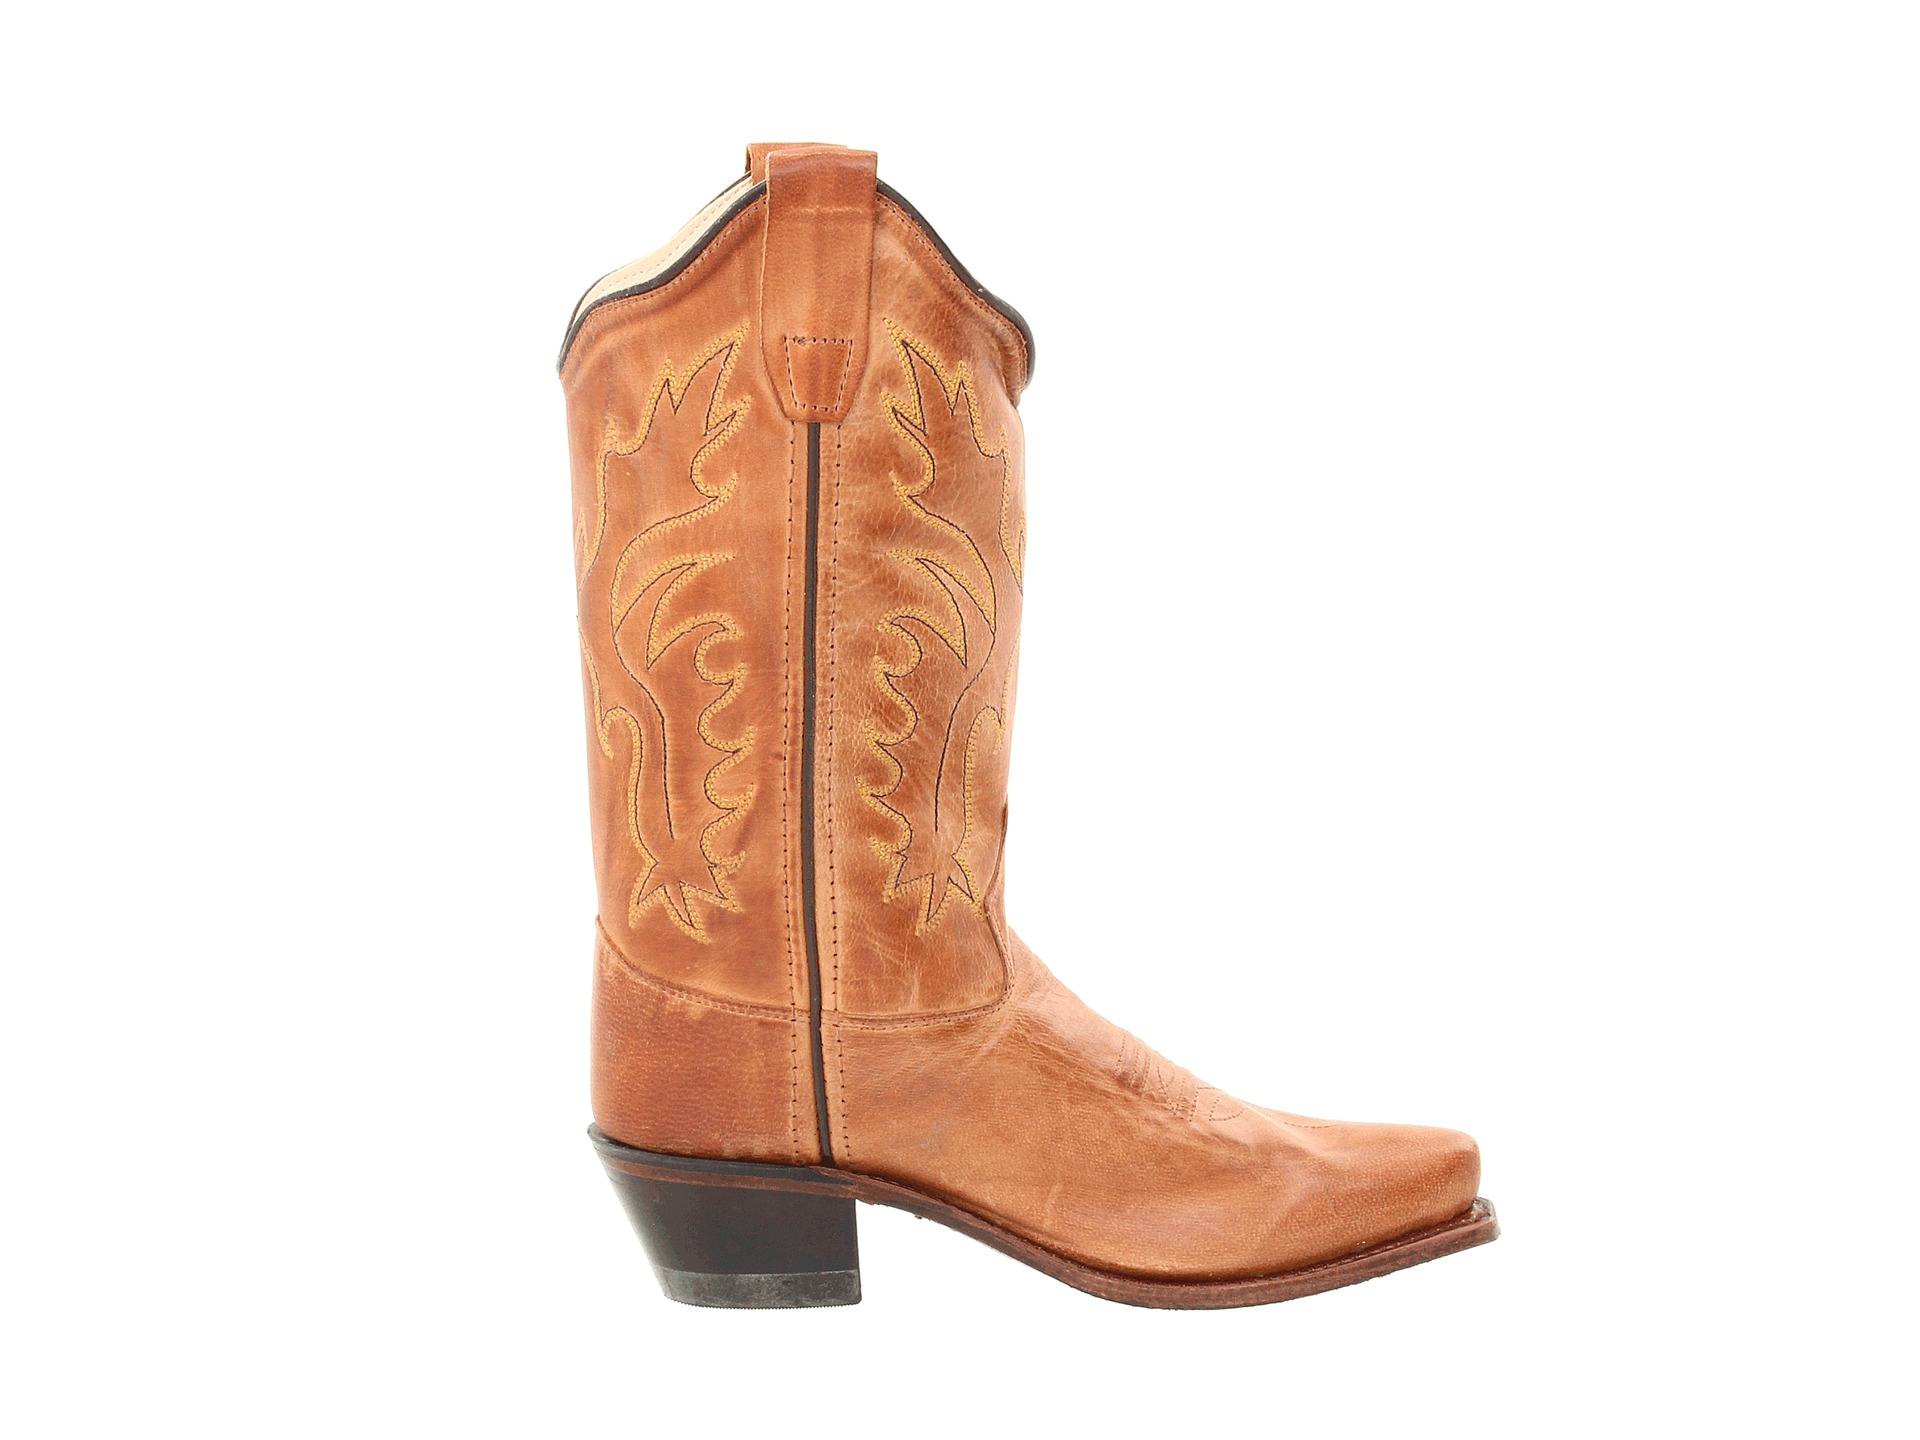 Old west kids boots western snip toe boot toddler little kid tan